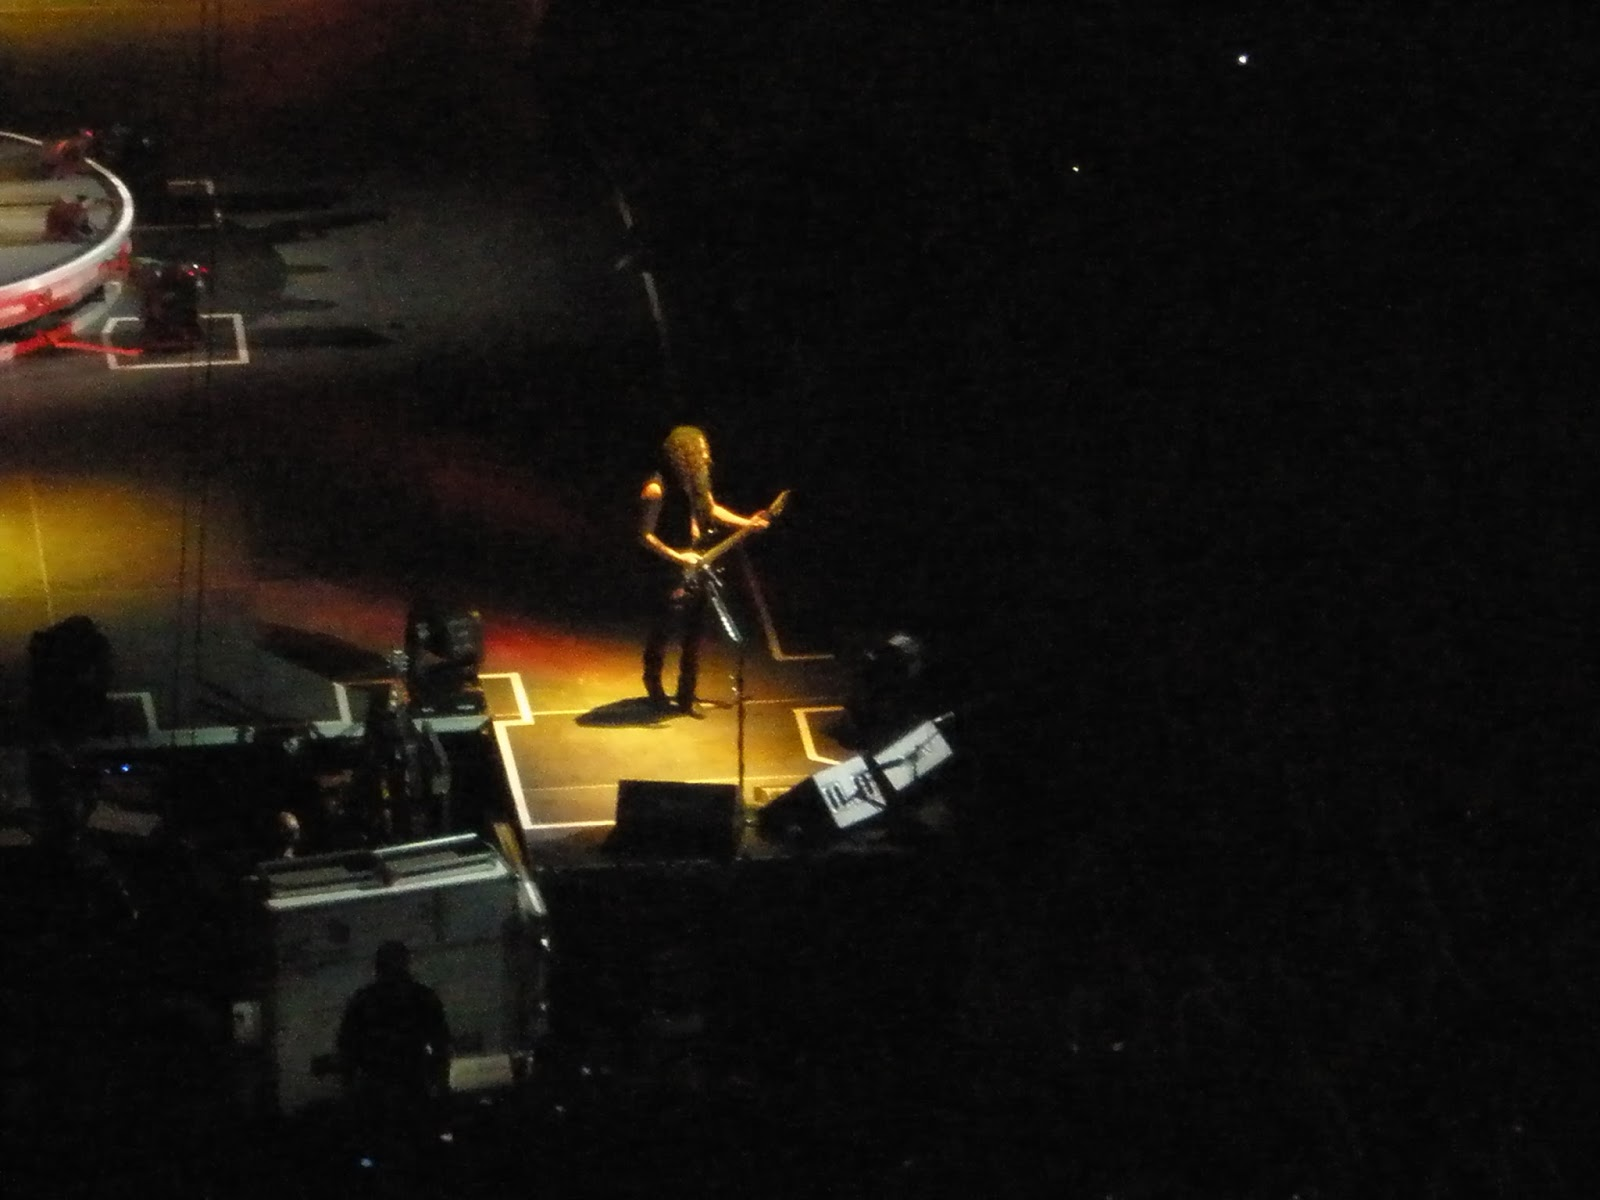 London, 02, dome, greenwich, millennium, Leeds festival, download, glastonbury, sonisphere, donnington, castle, farm, metal, heavy, metallica, meet and greet, james hetfield, rob t, lars ulrich, kirk hammet, sonisphere, autograph, signed, meeting, heavy metal, festival, gig, knebworth, rail